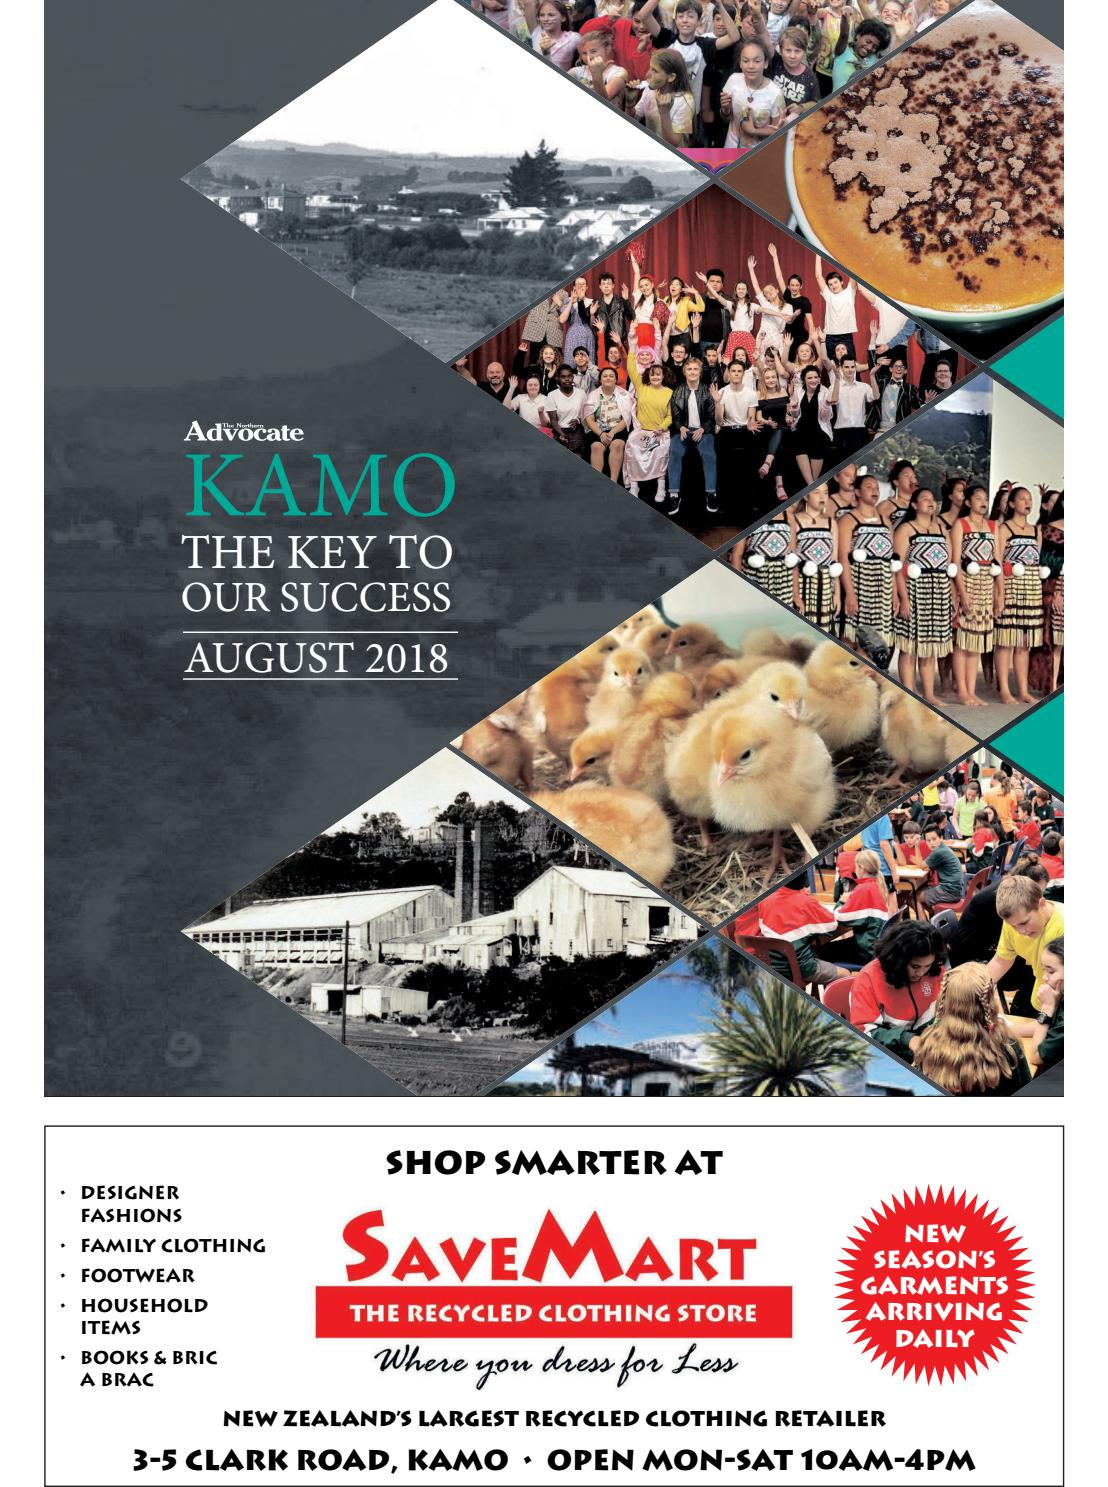 Kamo - The Key to our Success - August 2018 by Northern